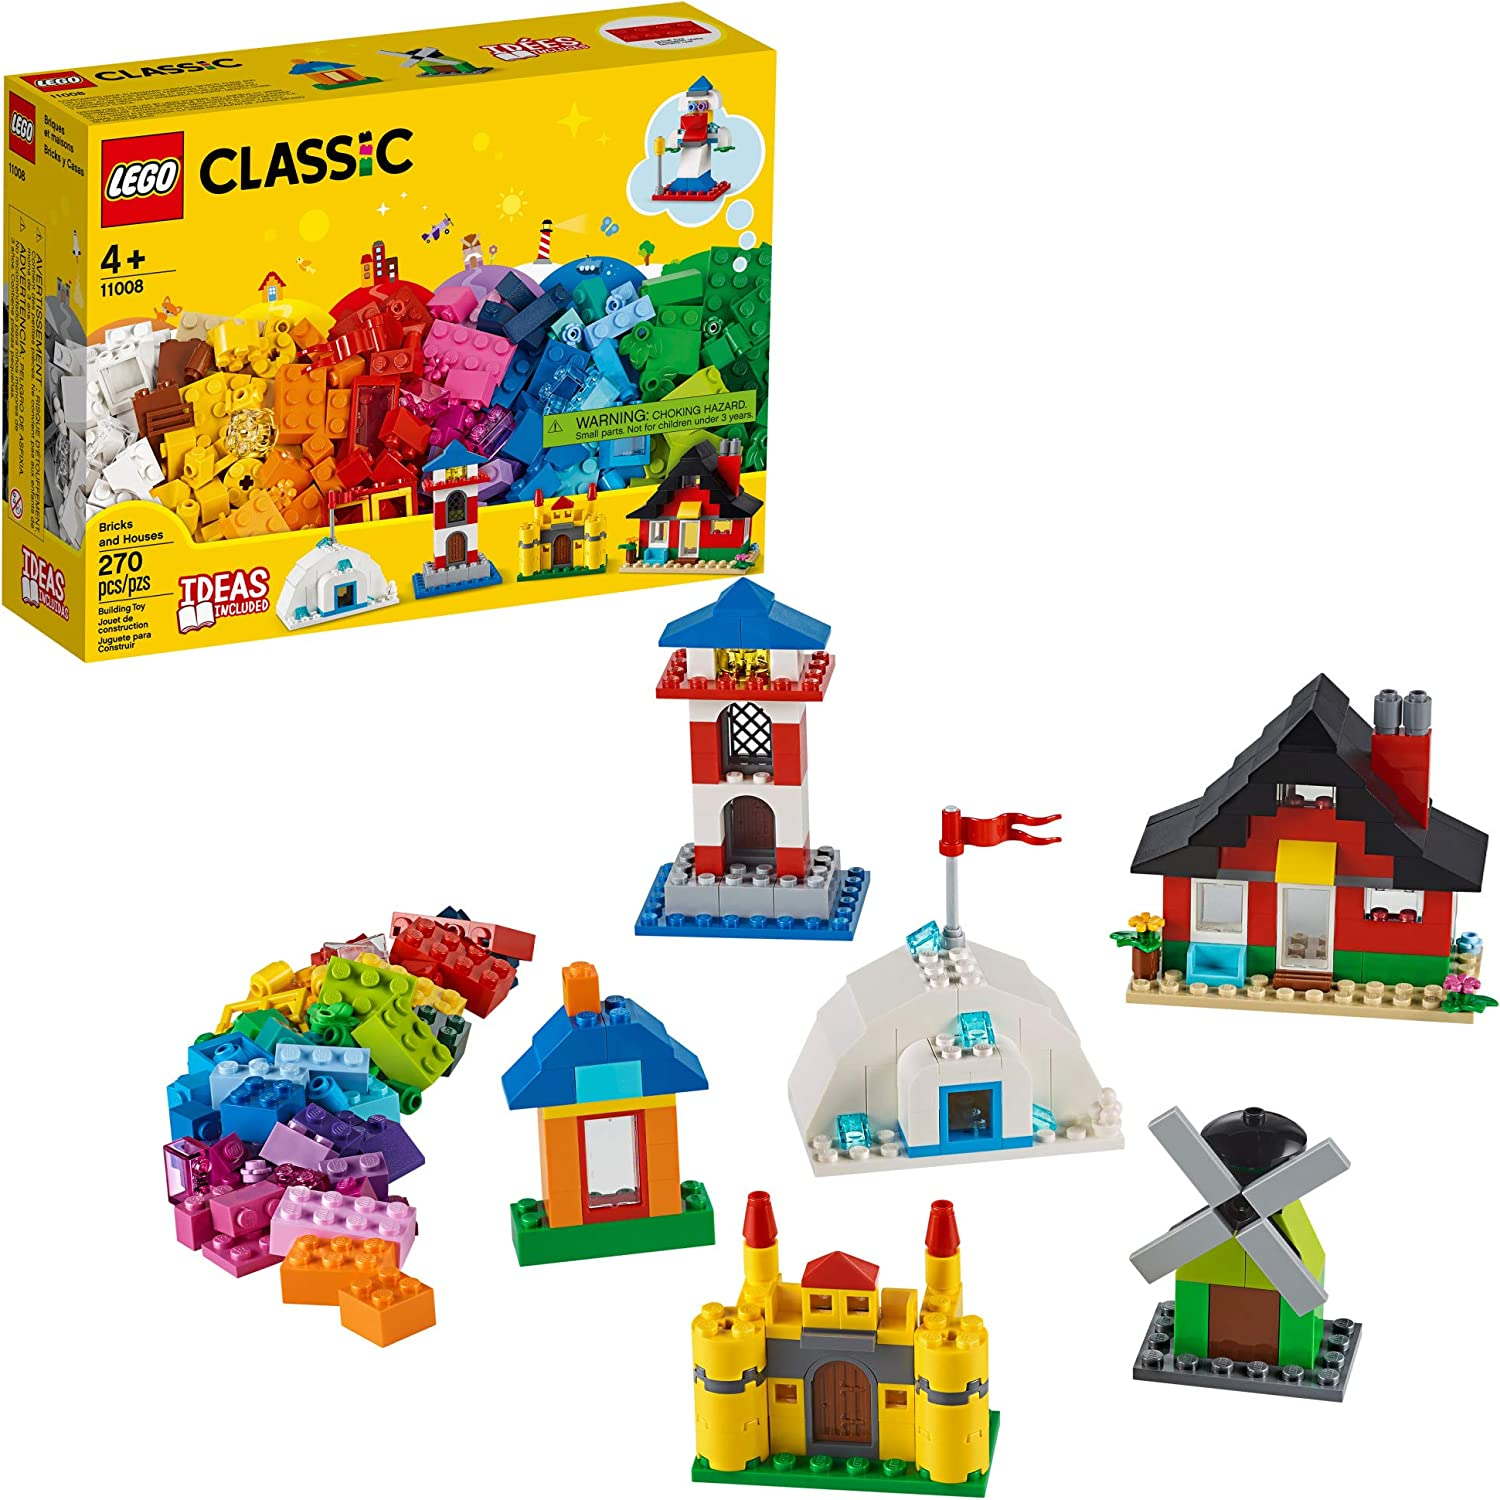 LEGO Classic Bricks and Houses 11008 Kids' Building Toy Starter Set with Fun Builds to Stimulate Young Minds, New 2020 (270 Pieces)